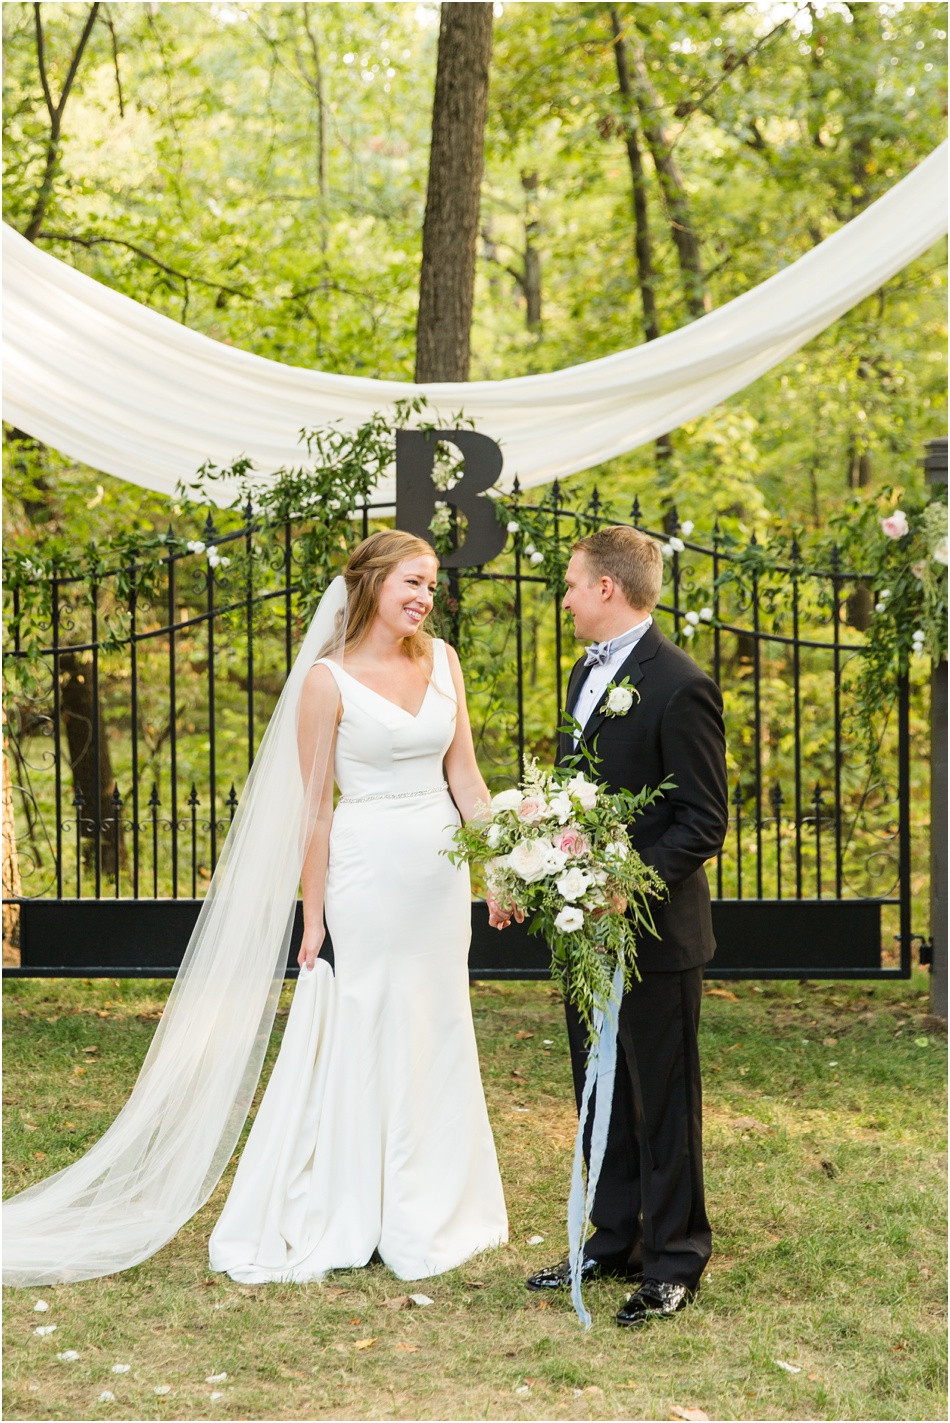 Weddings-at-the-bluffs-Indianapolis